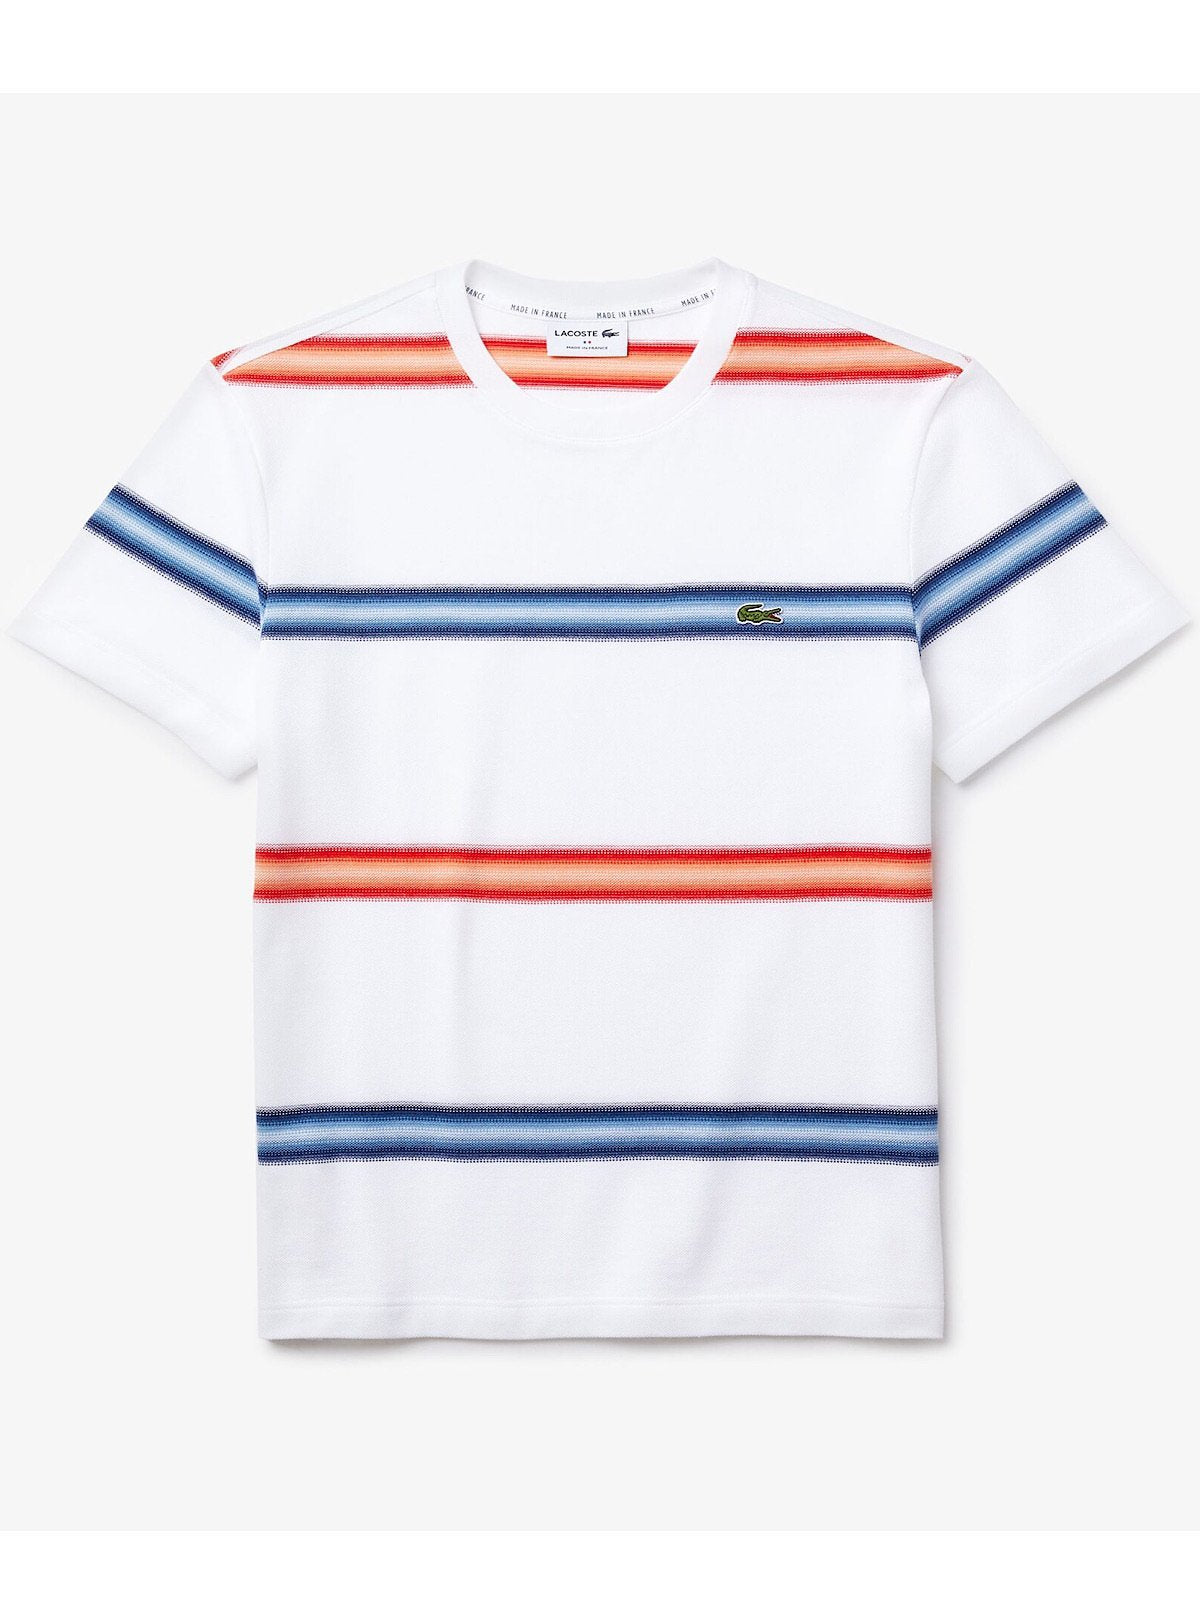 Lacoste T-Shirt - Striped - White - TH5065